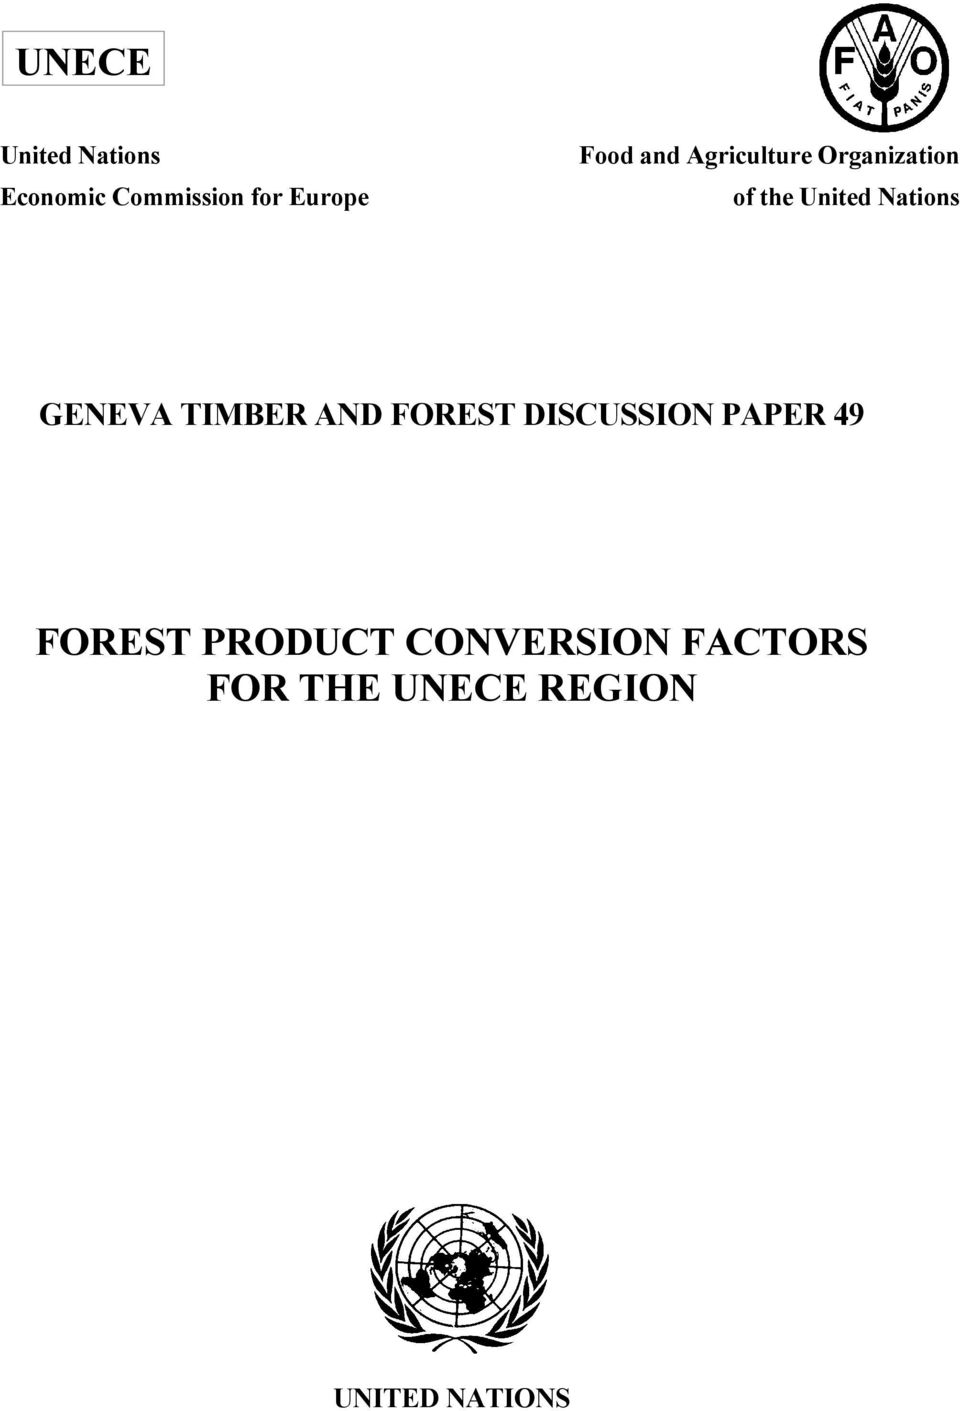 GENEVA TIMBER AND FOREST DISCUSSION PAPER 49 FOREST